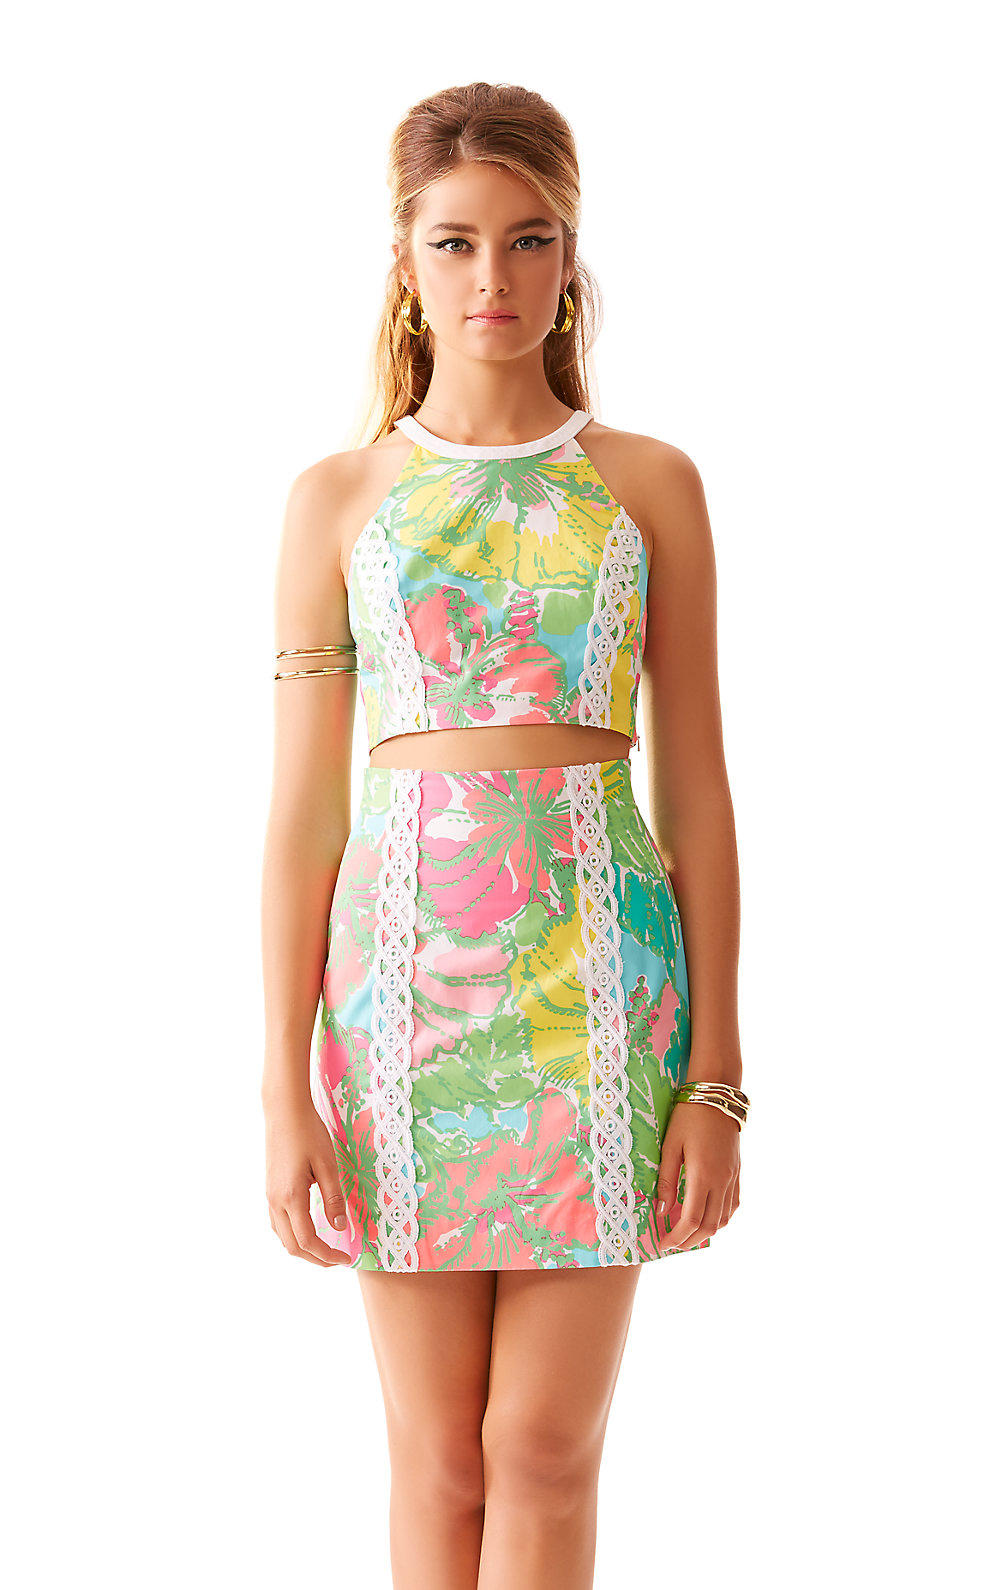 Lilly Pulitzer Vanna Crop Top & Skirt Set from Lilly Pulitzer